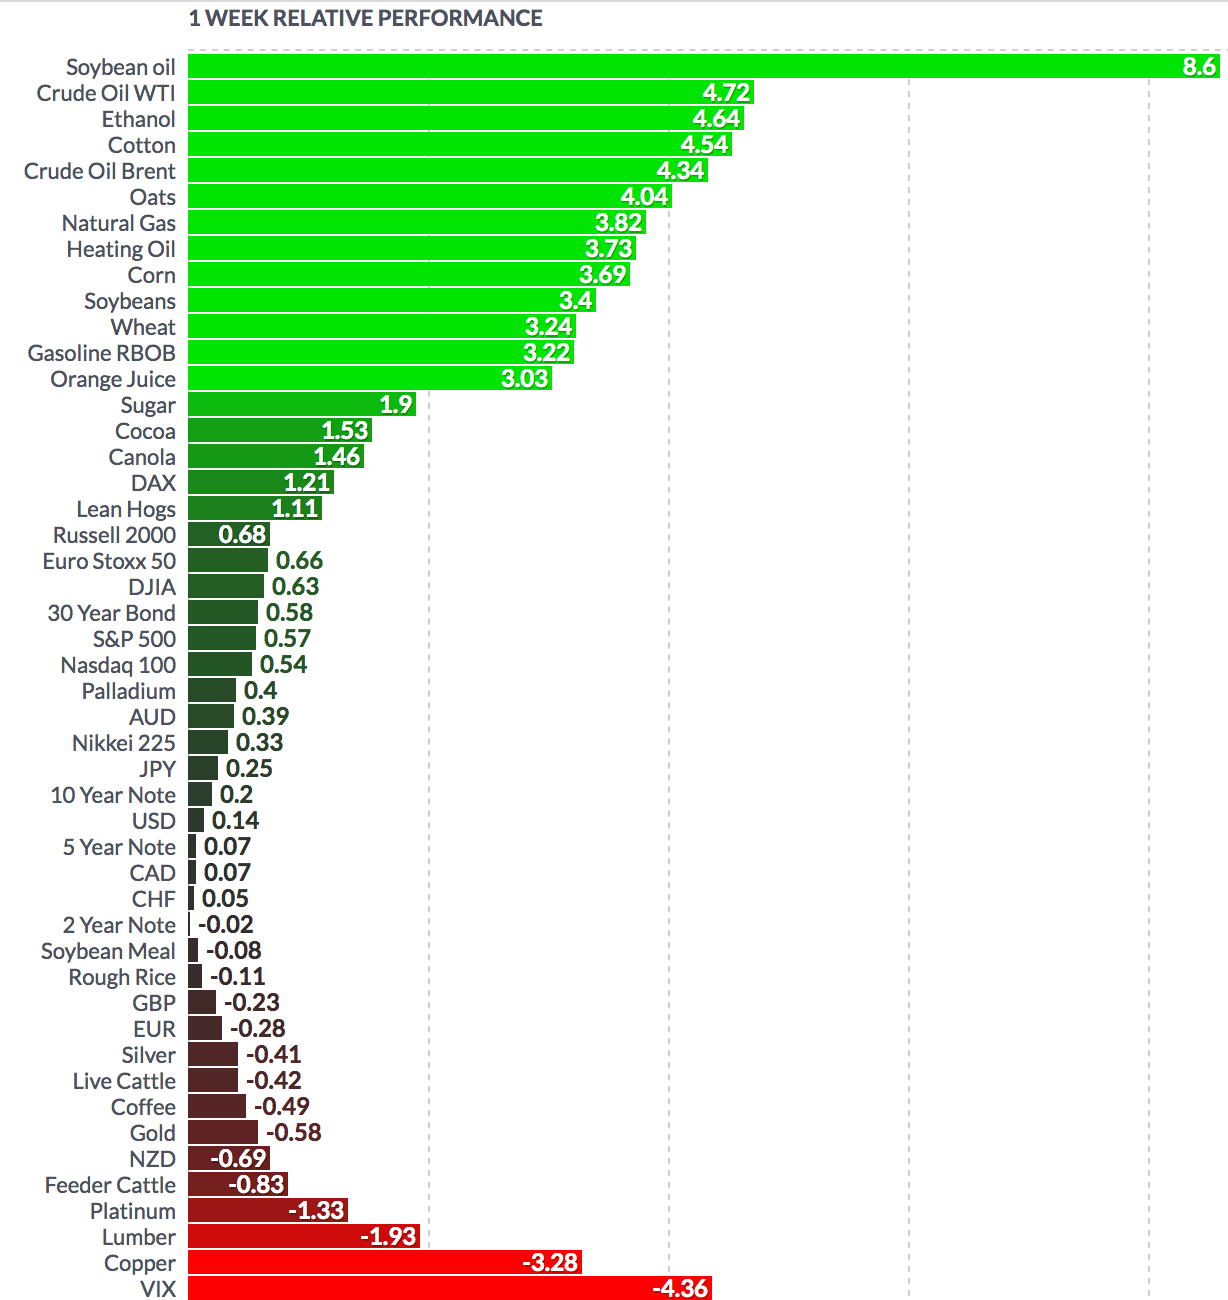 FUTURES-Weekly Performance